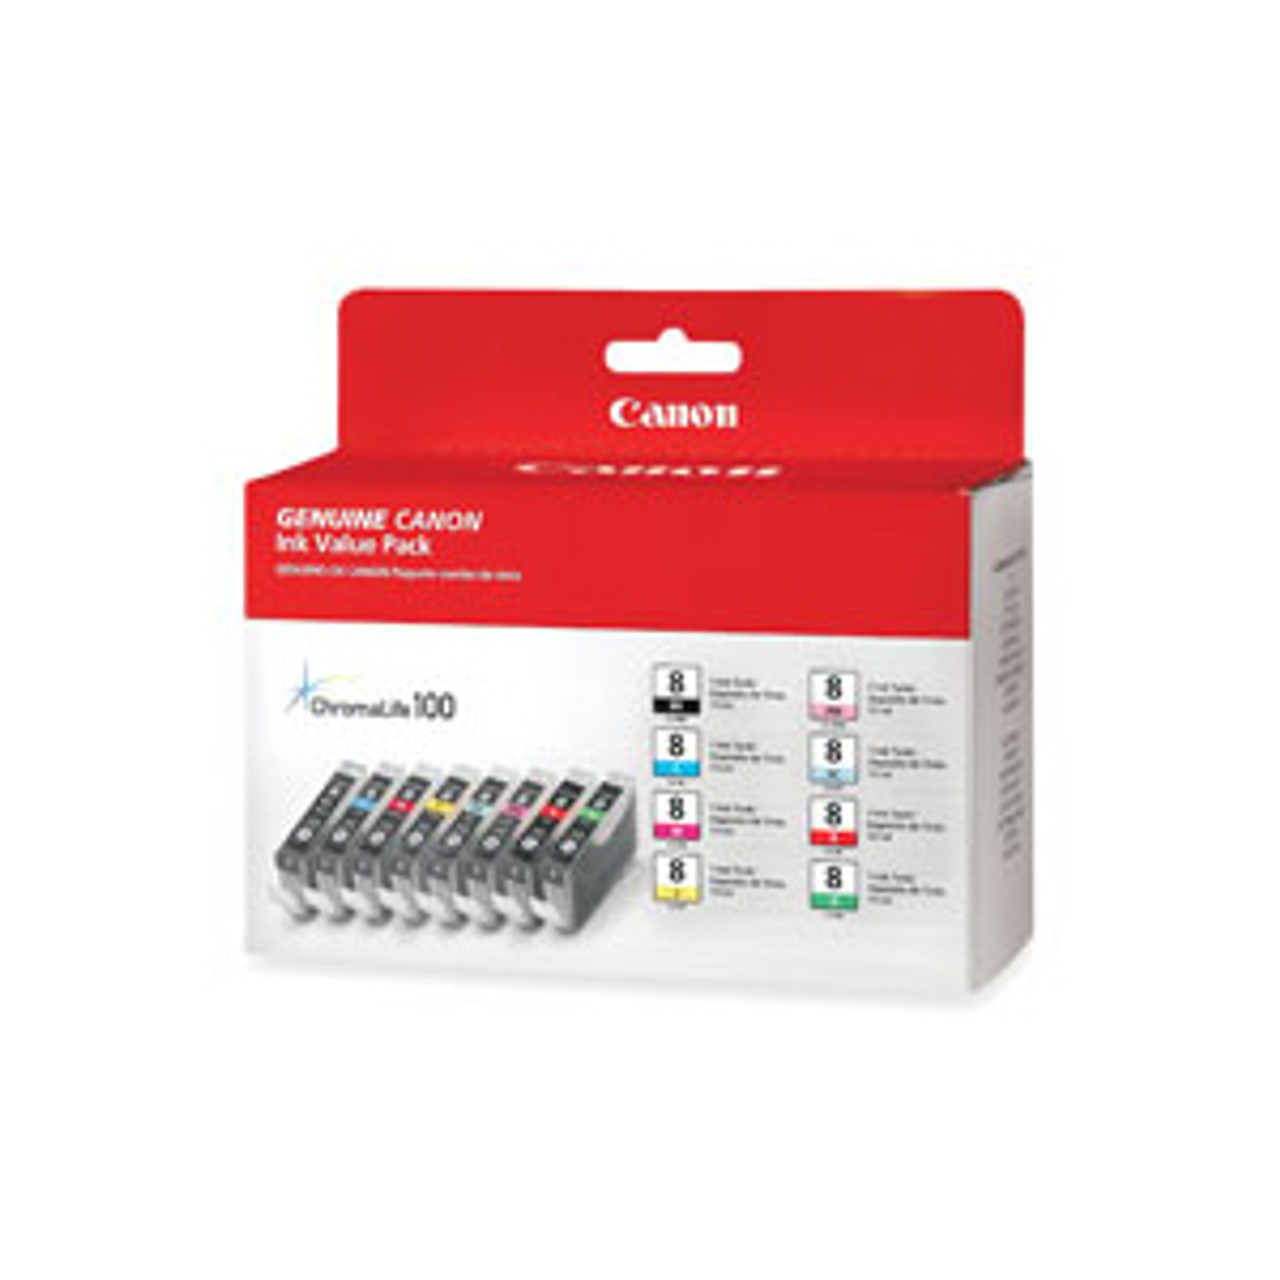 Canon CLI-8 8 color pack (Black, Cyan, Magenta, Yellow, Photo Cyan, Photo Magenta, Red and Green)